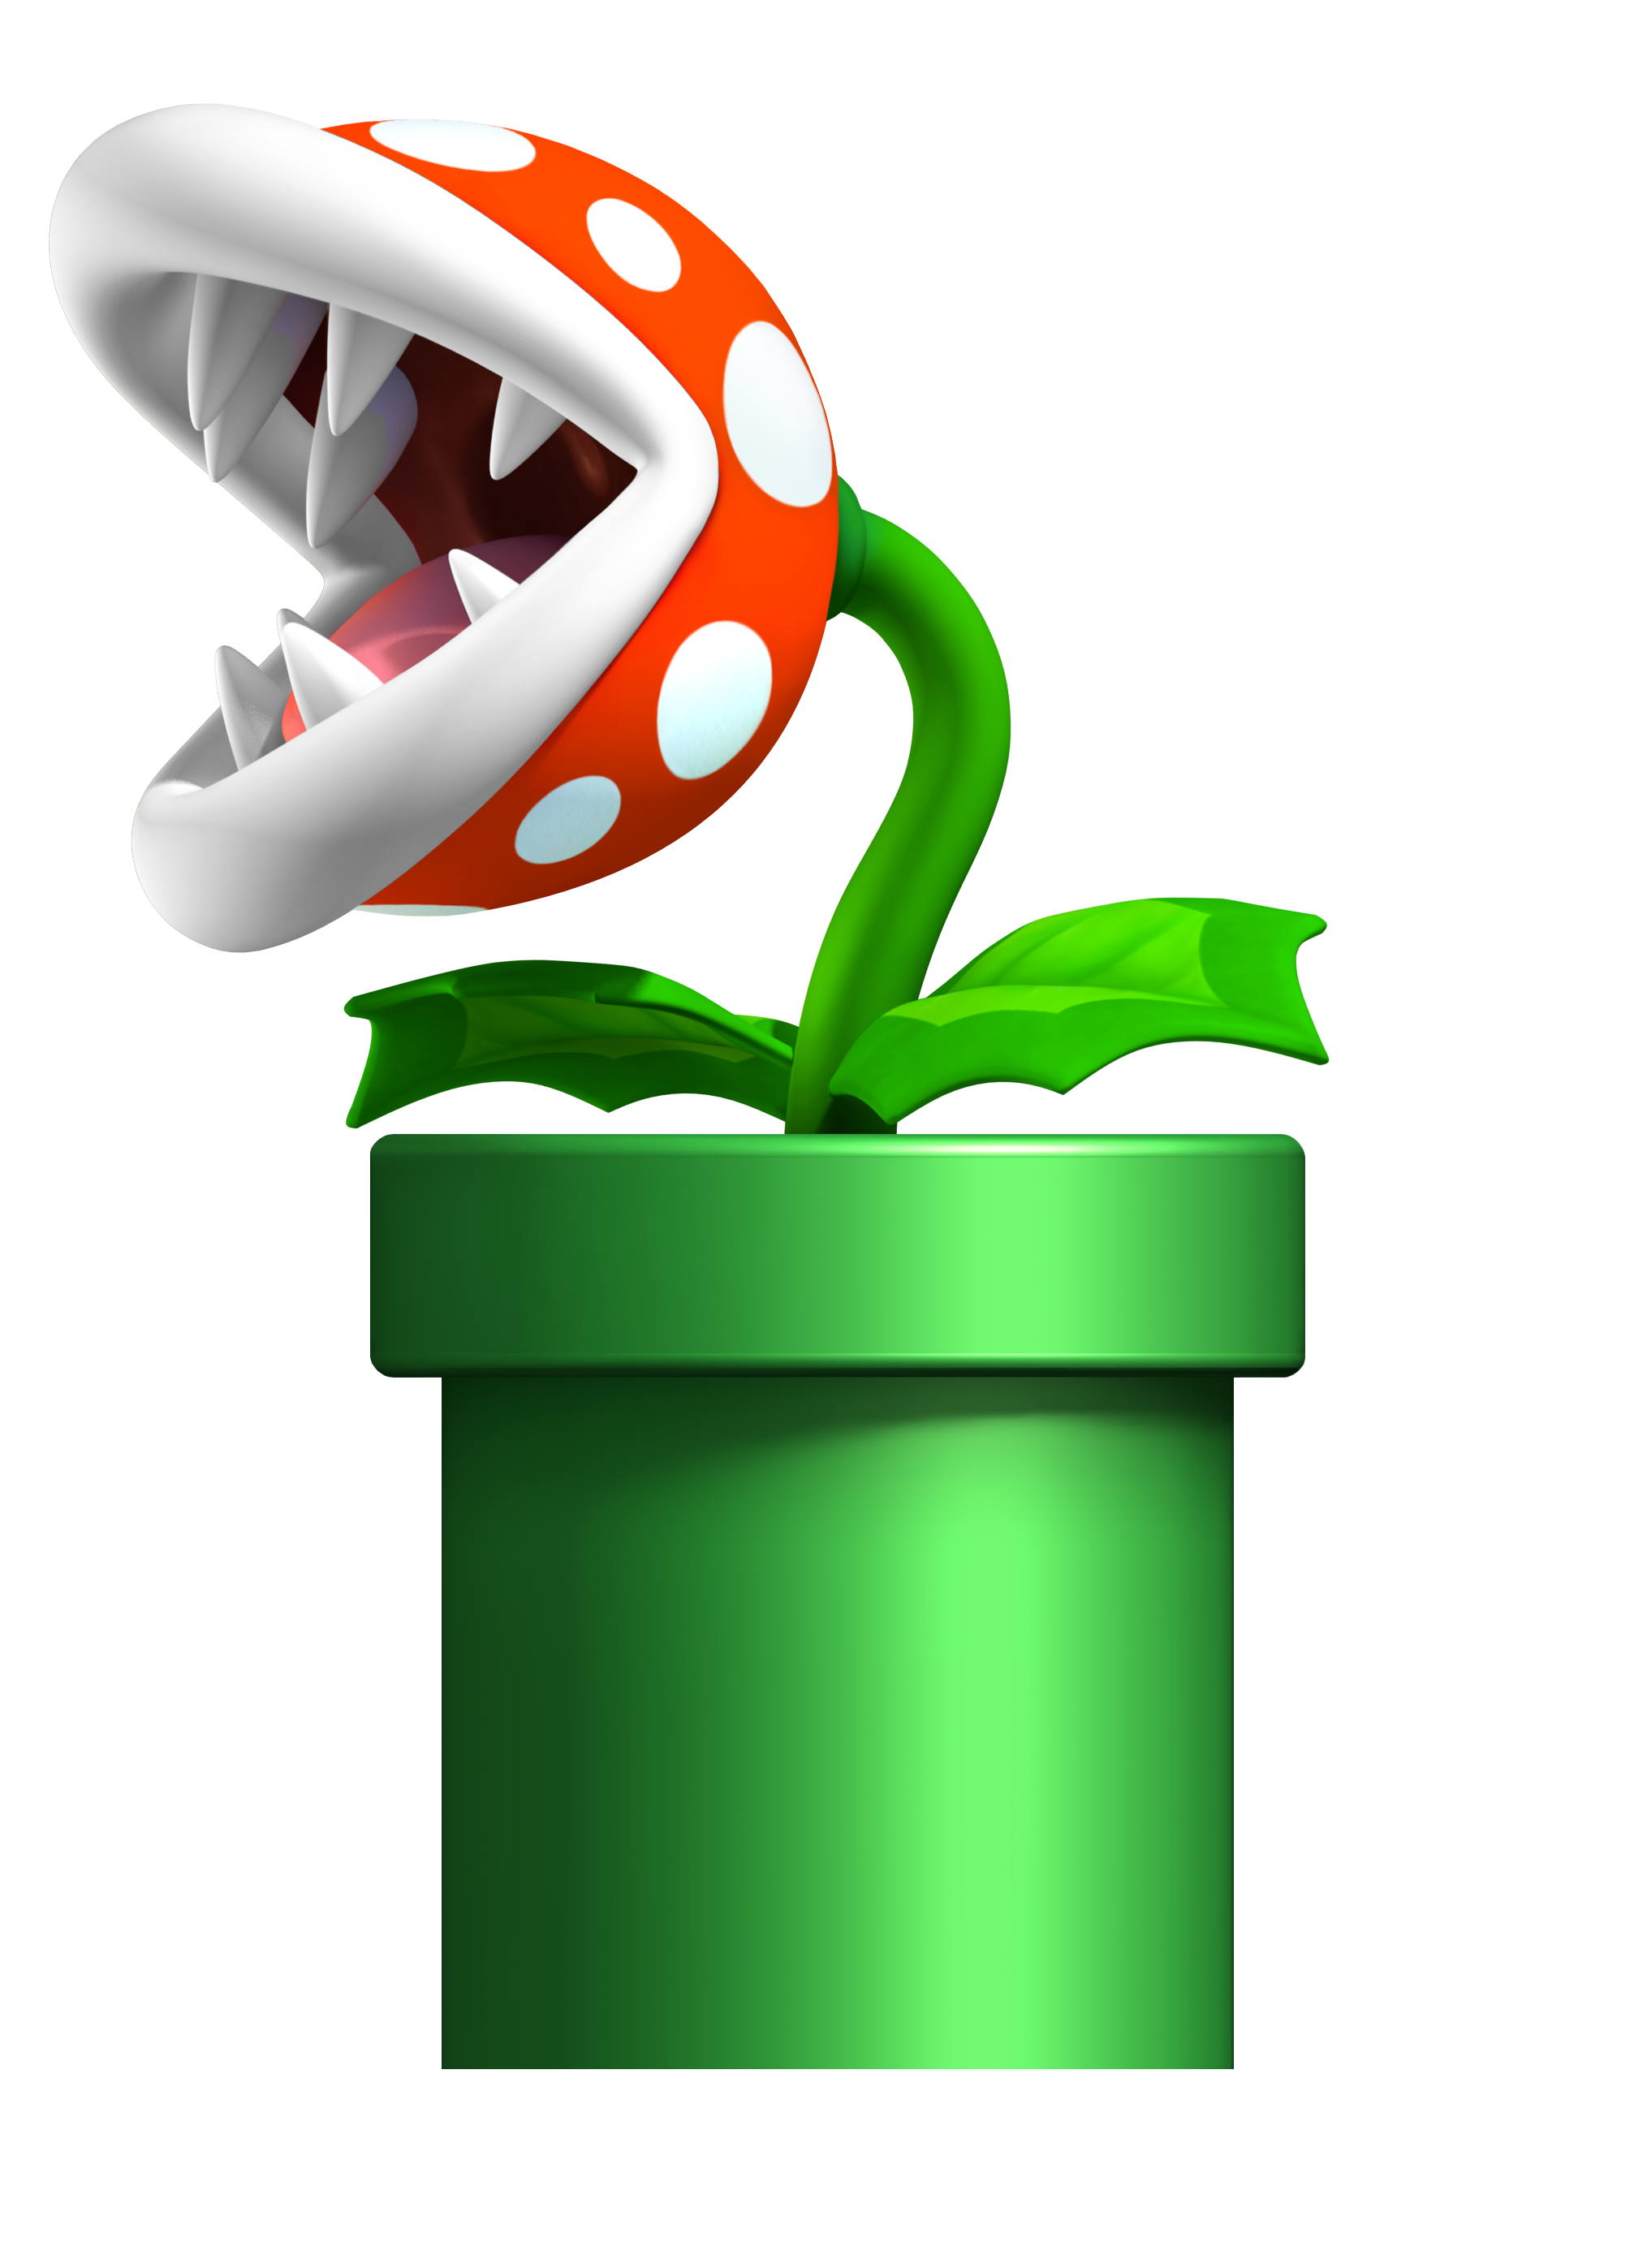 A Piranha Plant, courtesy of the Fantendo Wiki